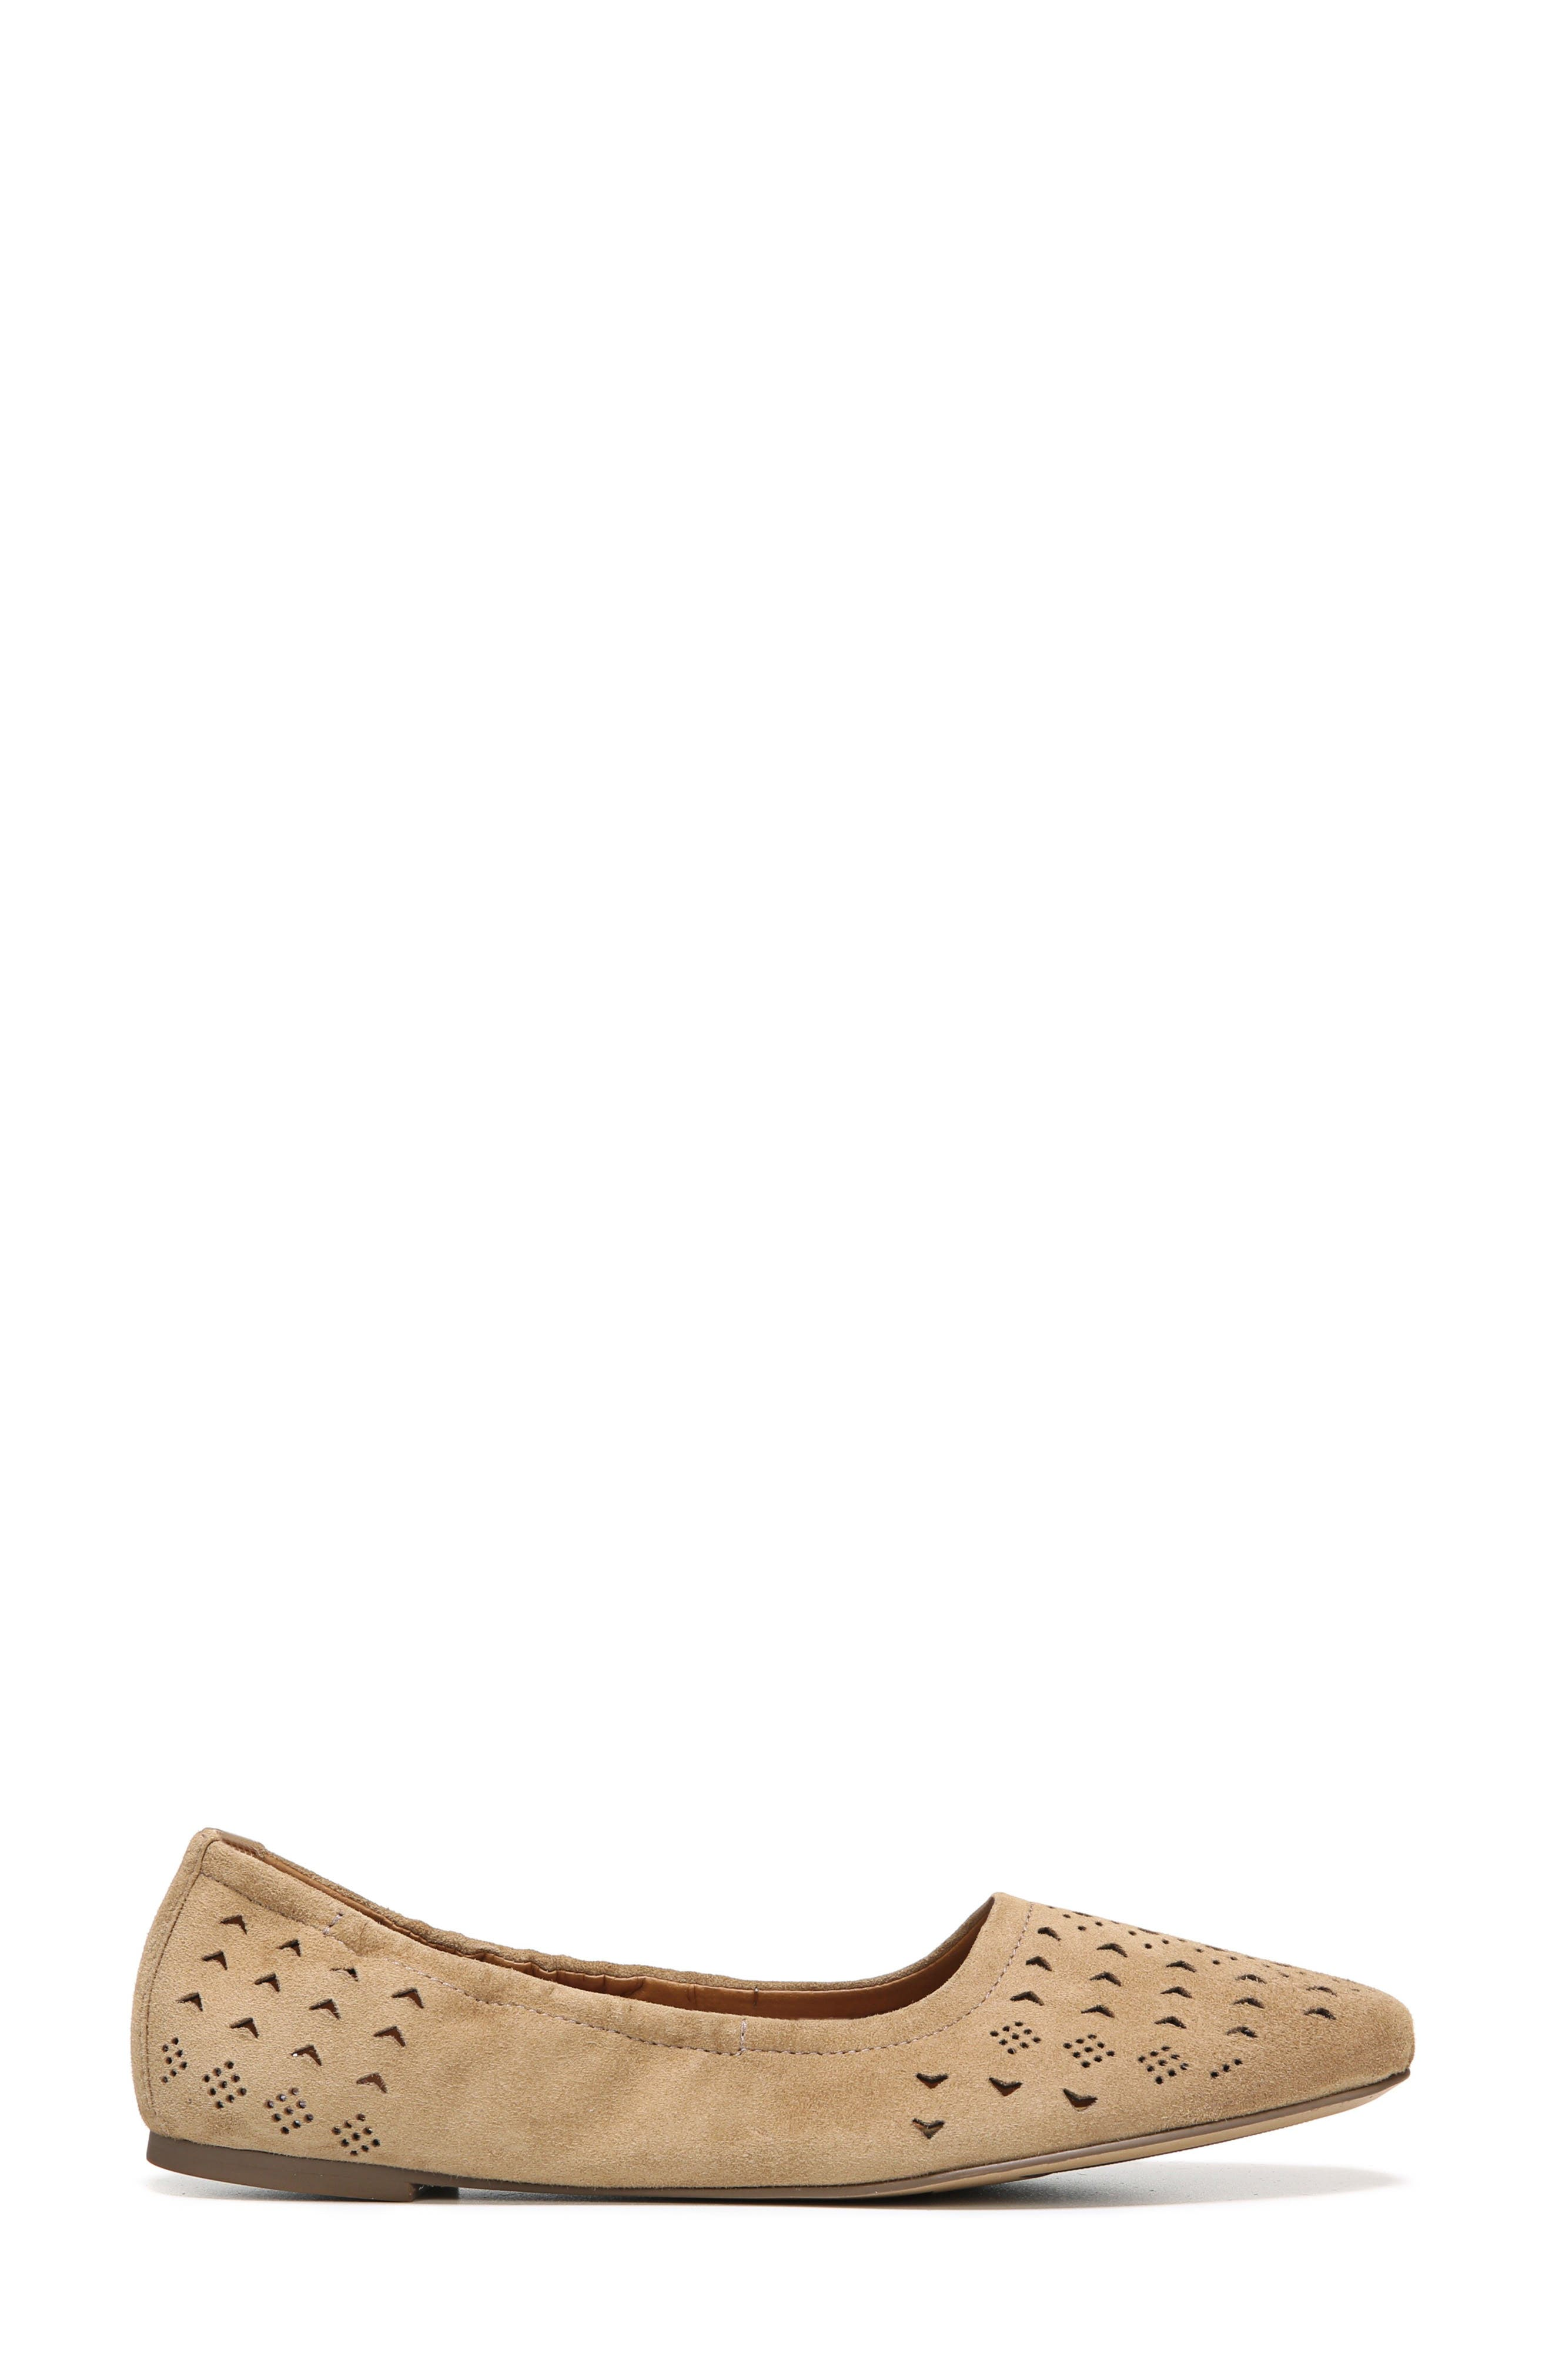 Alternate Image 3  - SARTO by Franco Sarto Brewer Perforated Ballet Flat (Women)